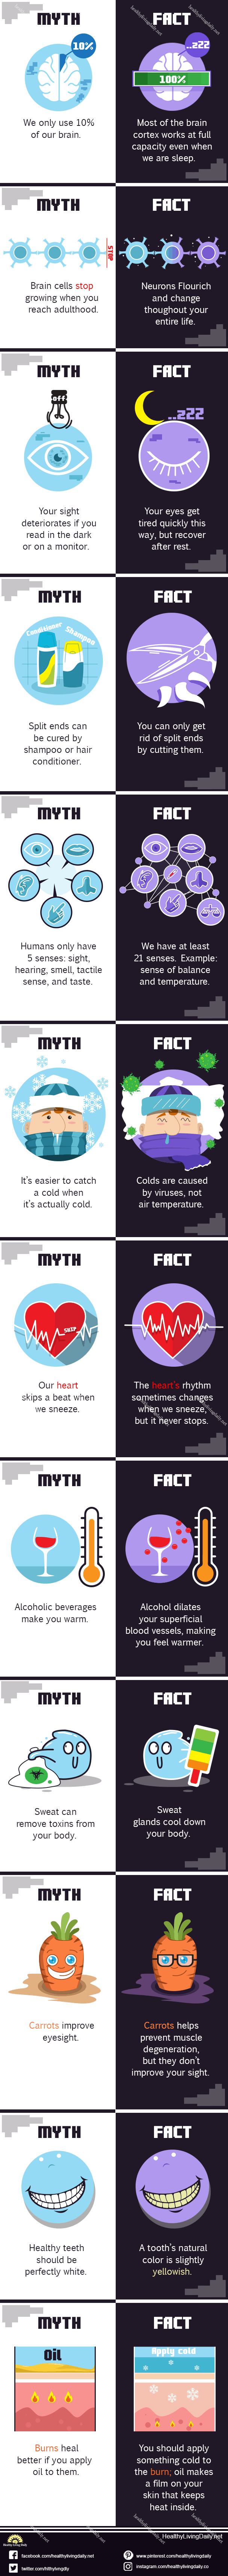 infographic image of myth and fact